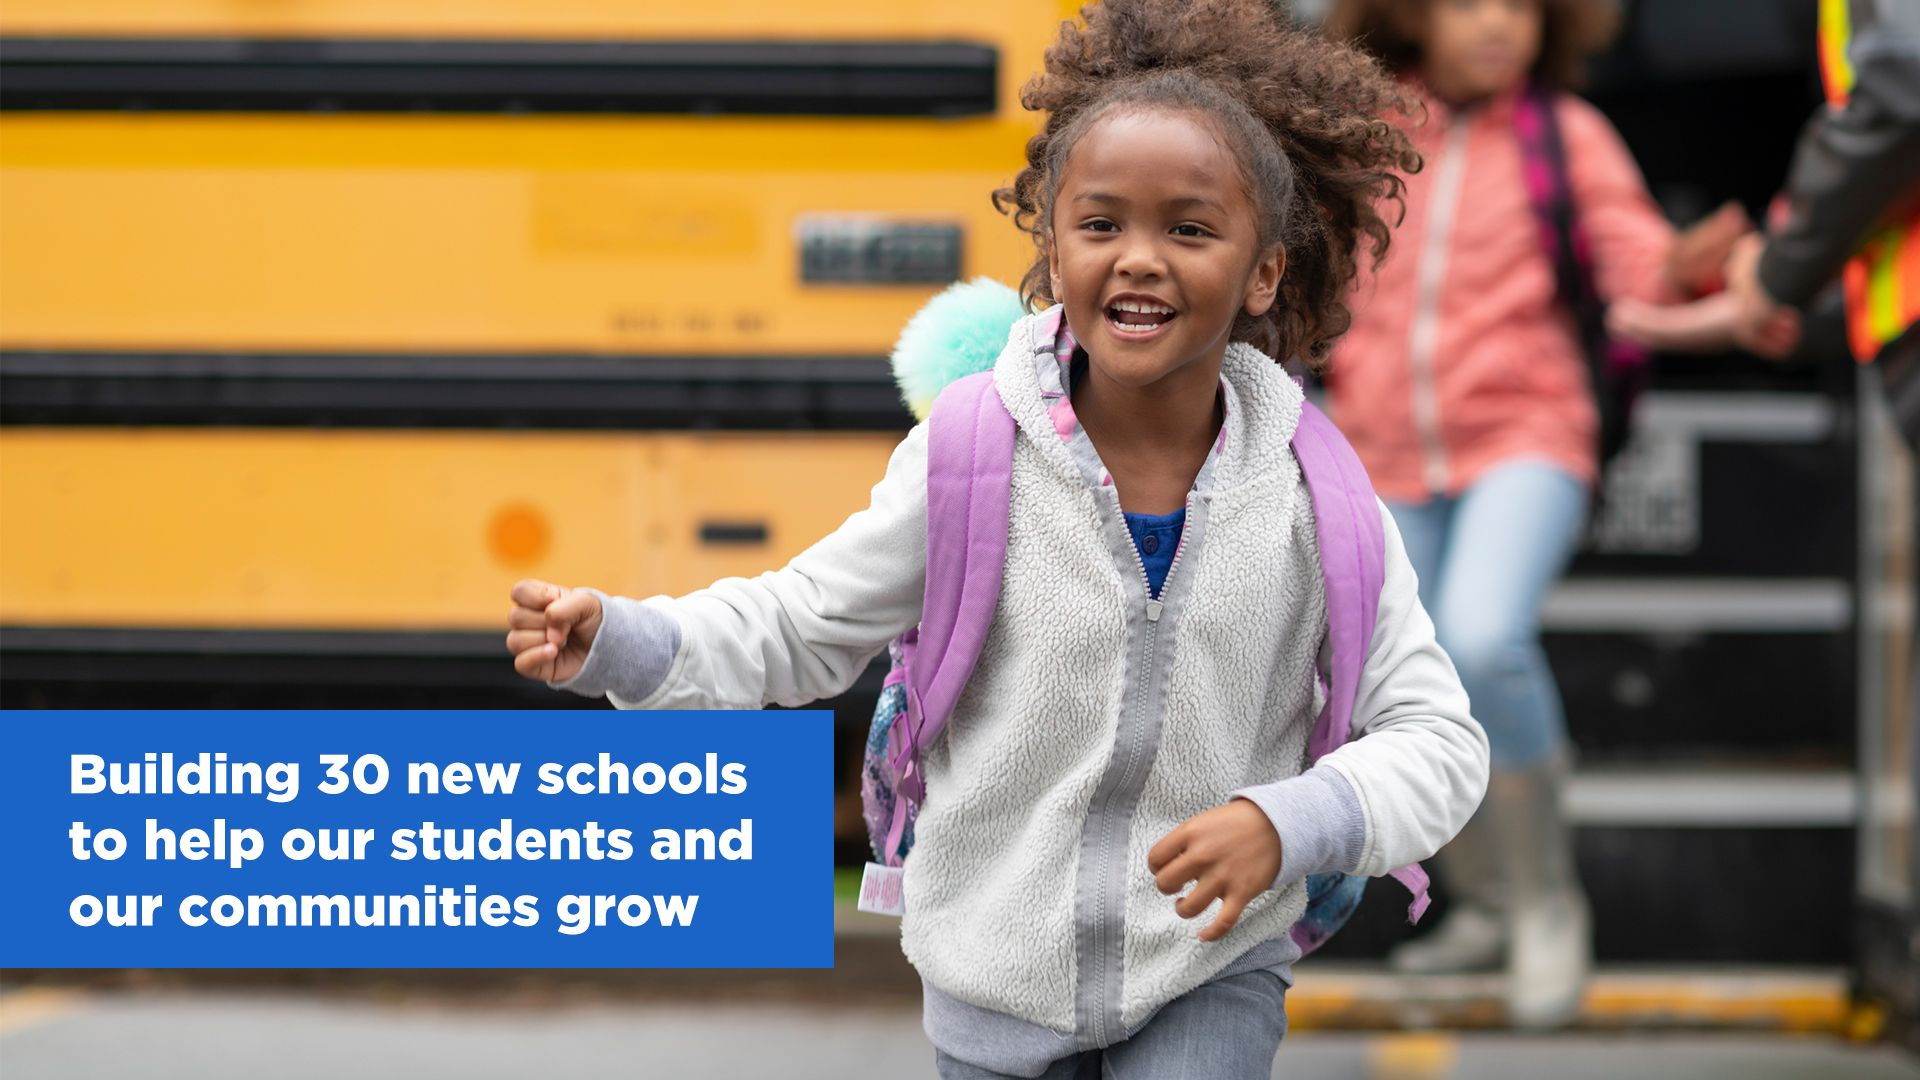 Ontario Building and Expanding Schools across the Province